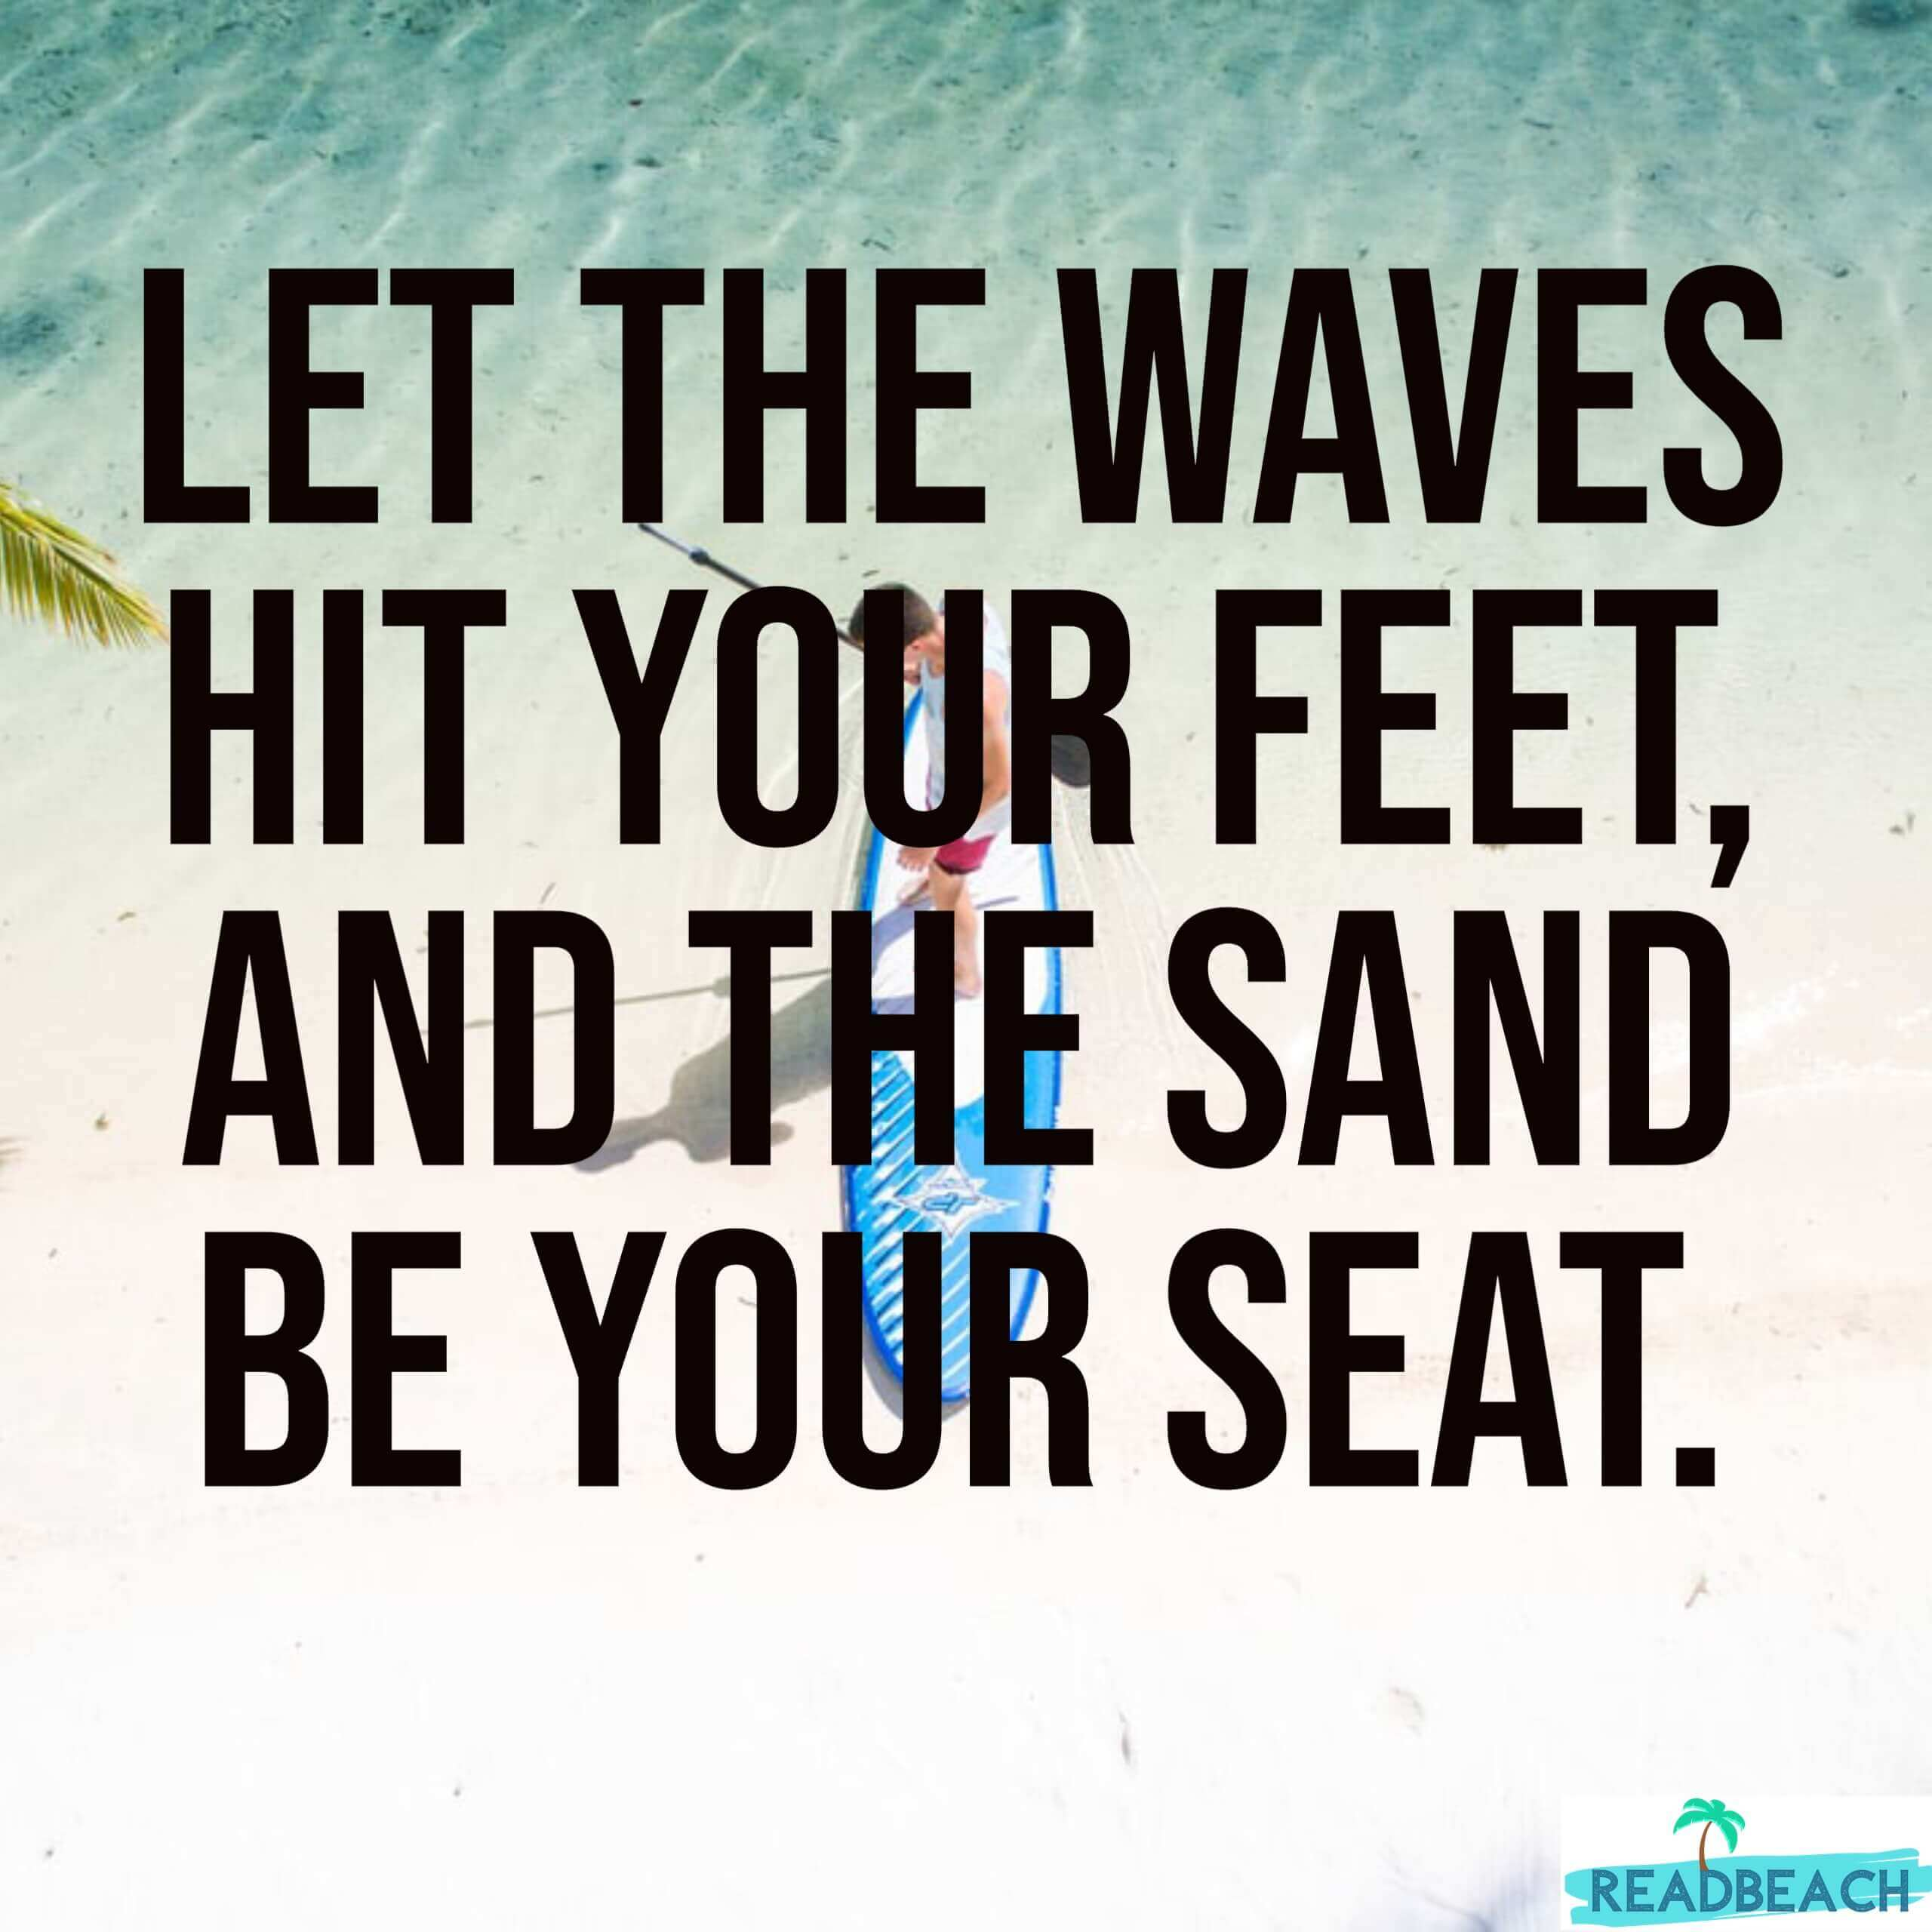 62 Eat Quotes with Pictures 📸🖼️ - Let the waves hit your feet, and the sand be your seat.